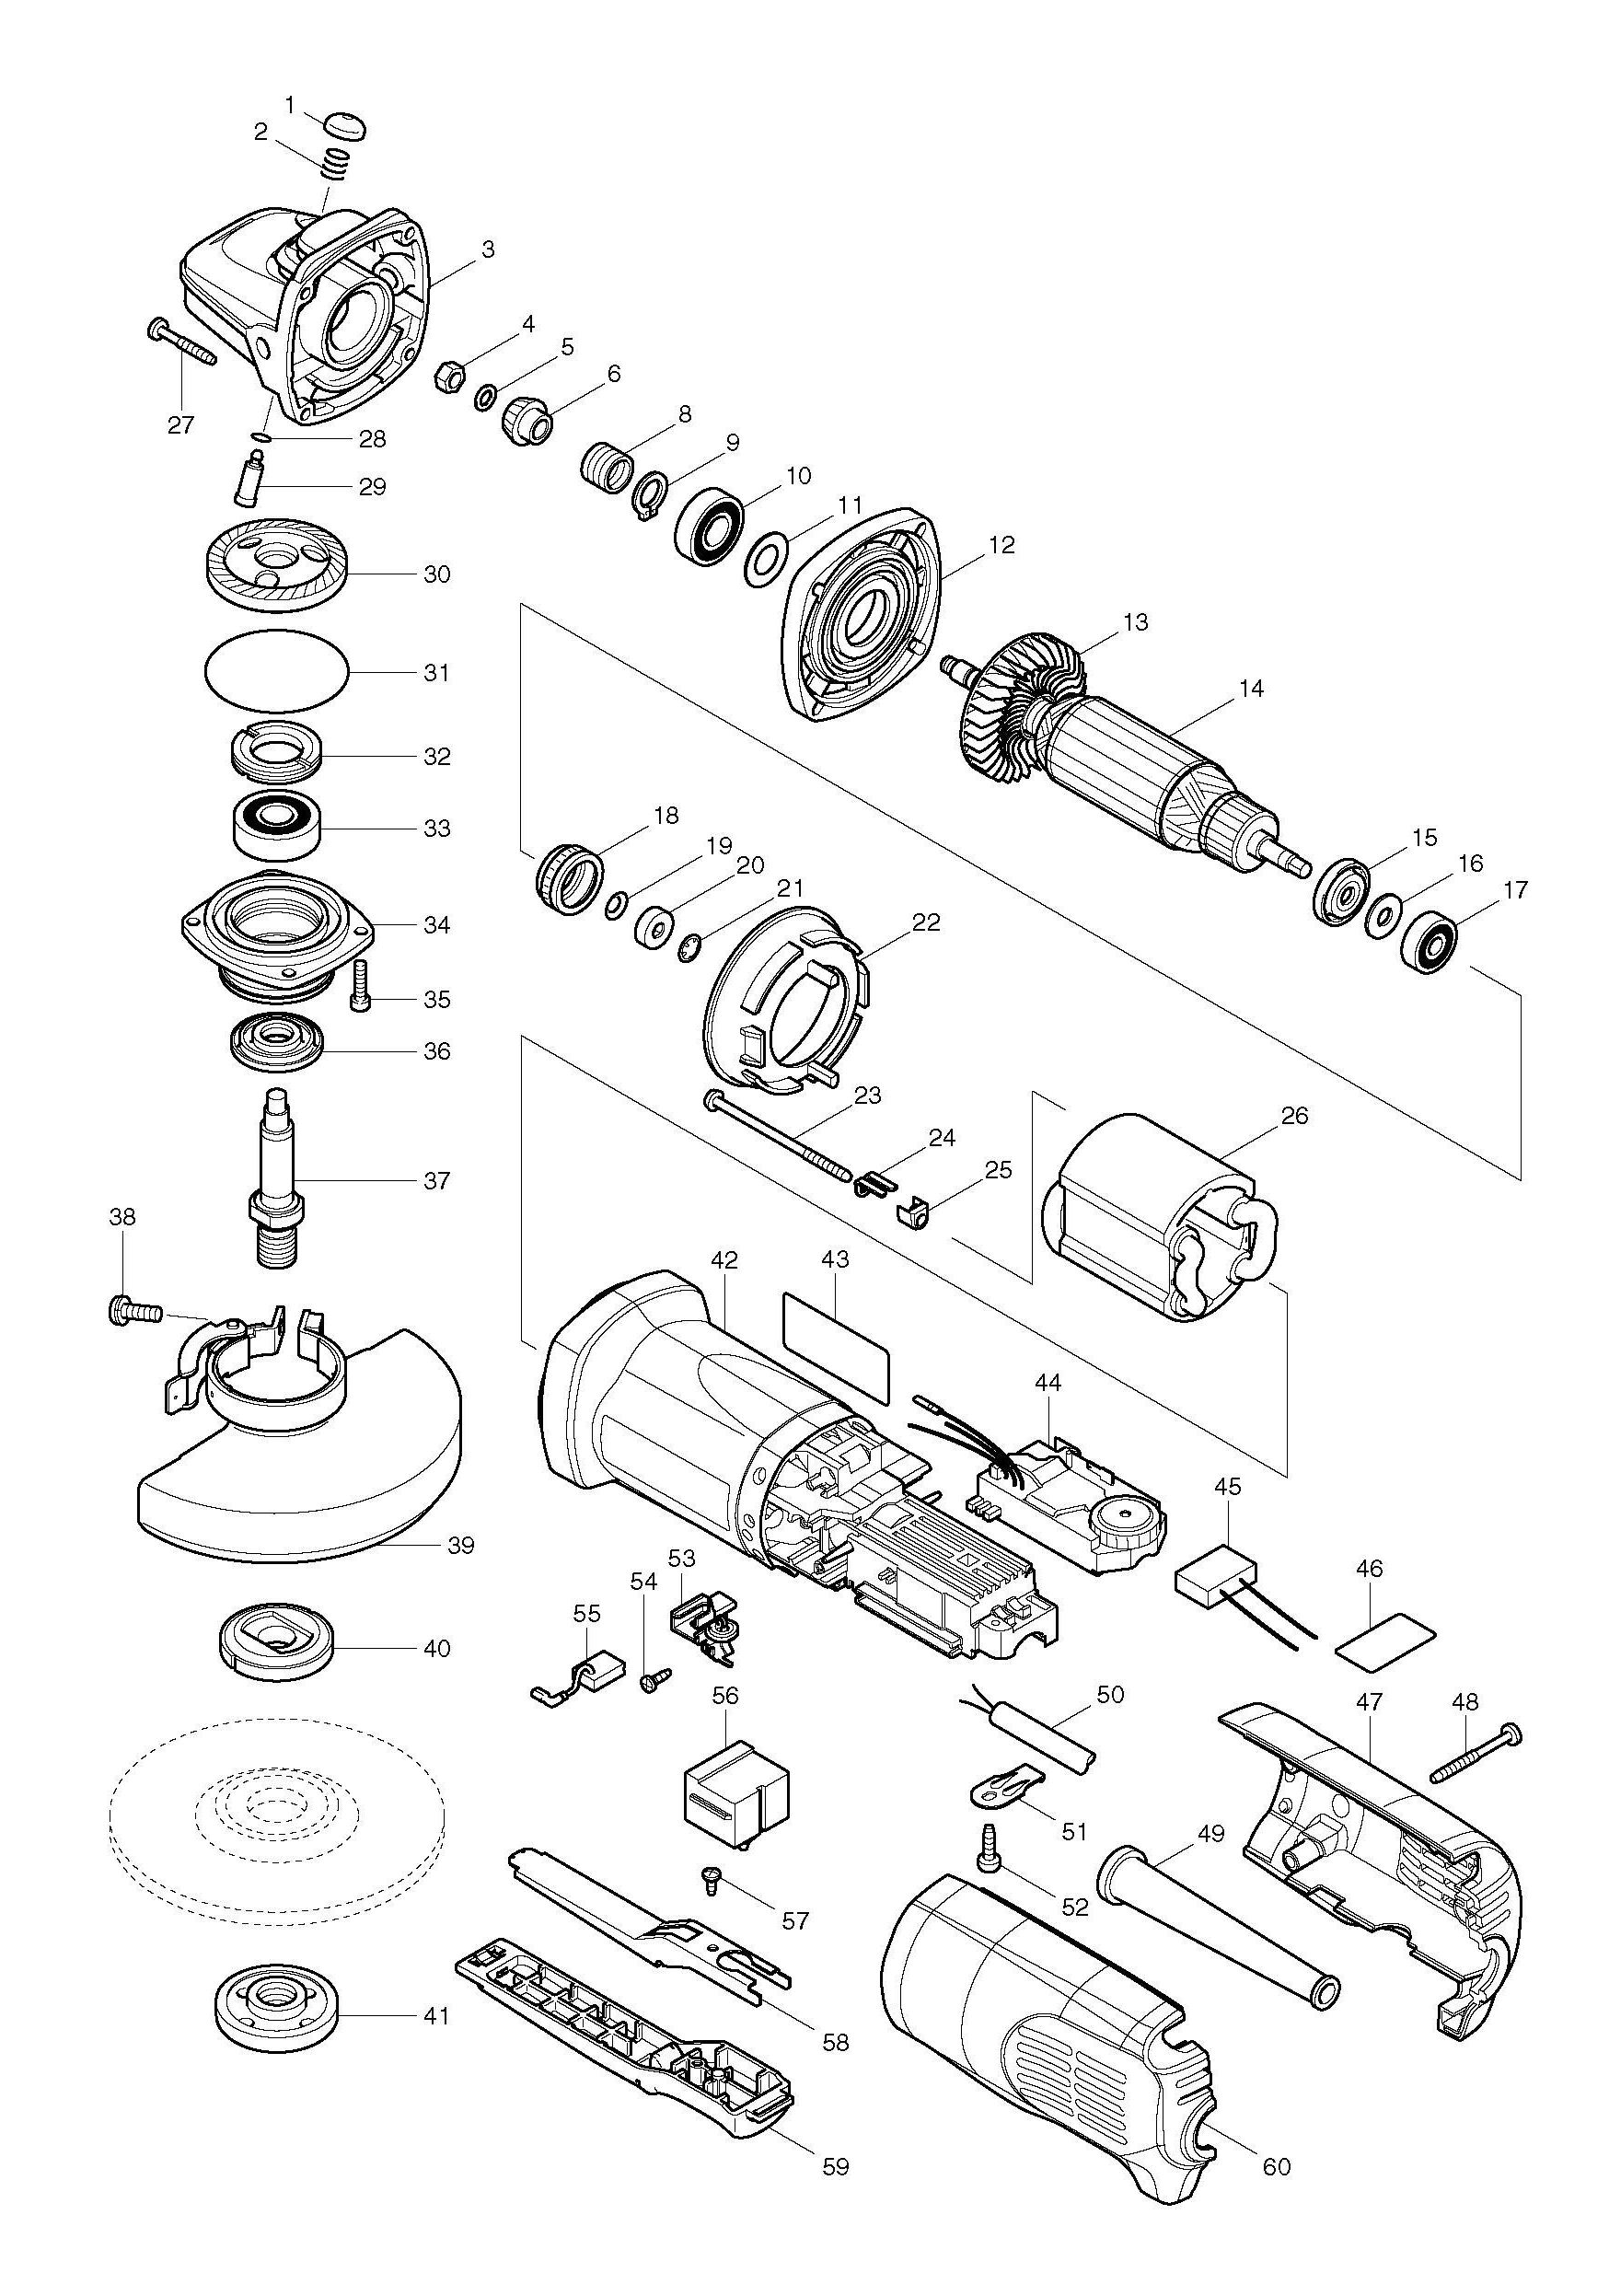 Makita Grinder Wiring Diagram Trusted Wiring Diagrams Rh Wiringhubme Today  On Makita Angle Grinder Parts For Makita Grinder Wire Diagram Trusted Wiring  ...